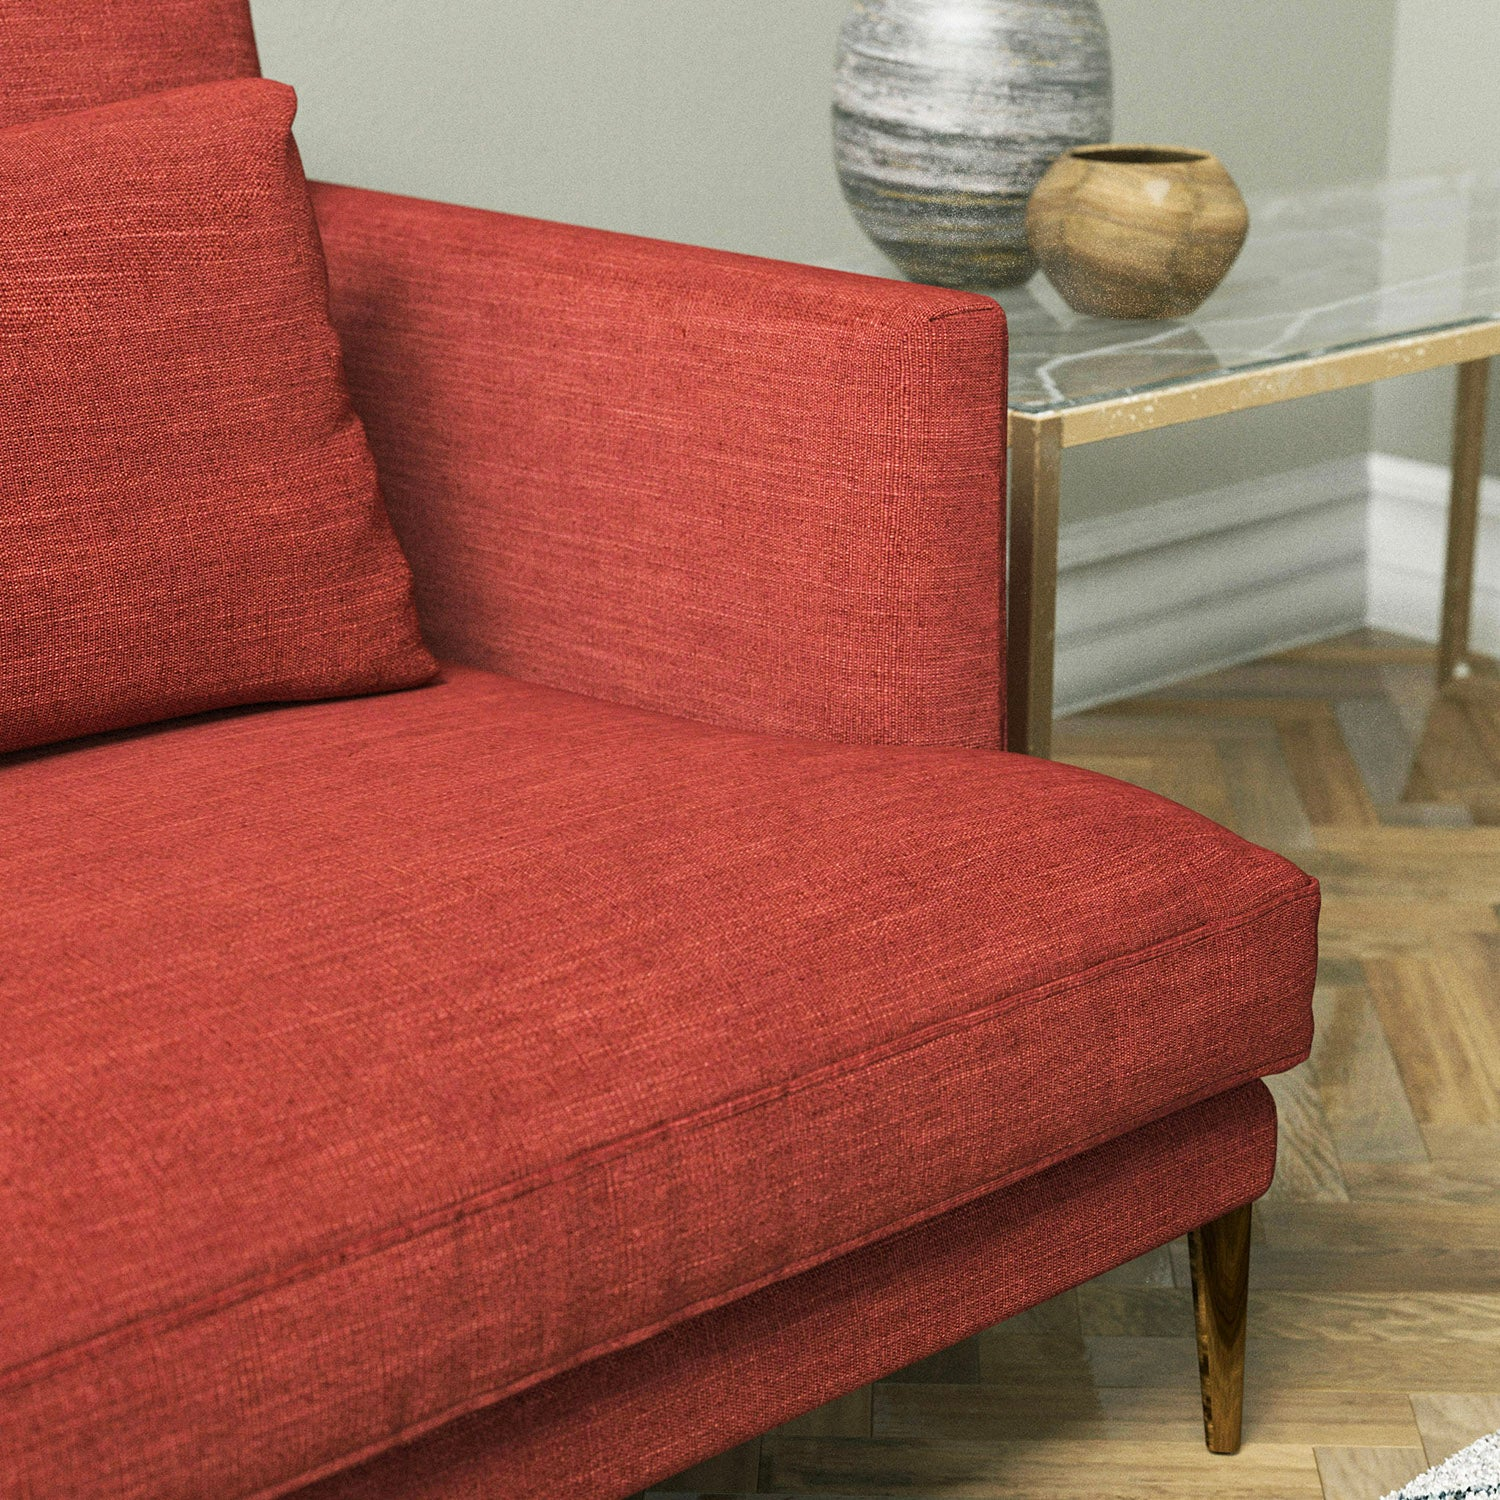 Sofa in a red linen blend upholstery fabric